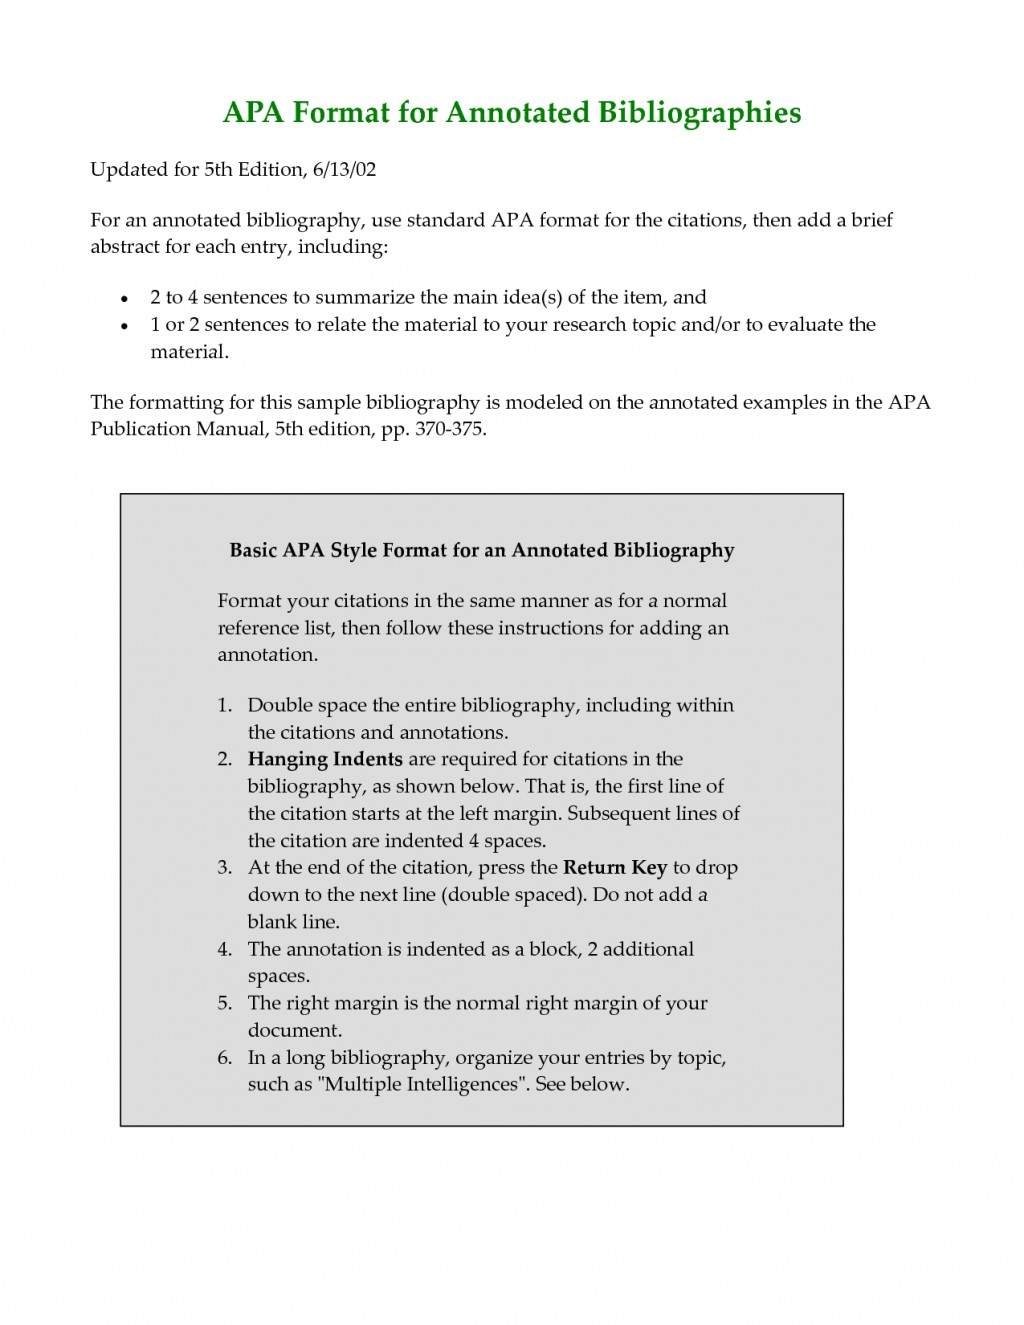 010 Apa Referencing Style For Research Paper Fantastic Citation Format Model Example Large